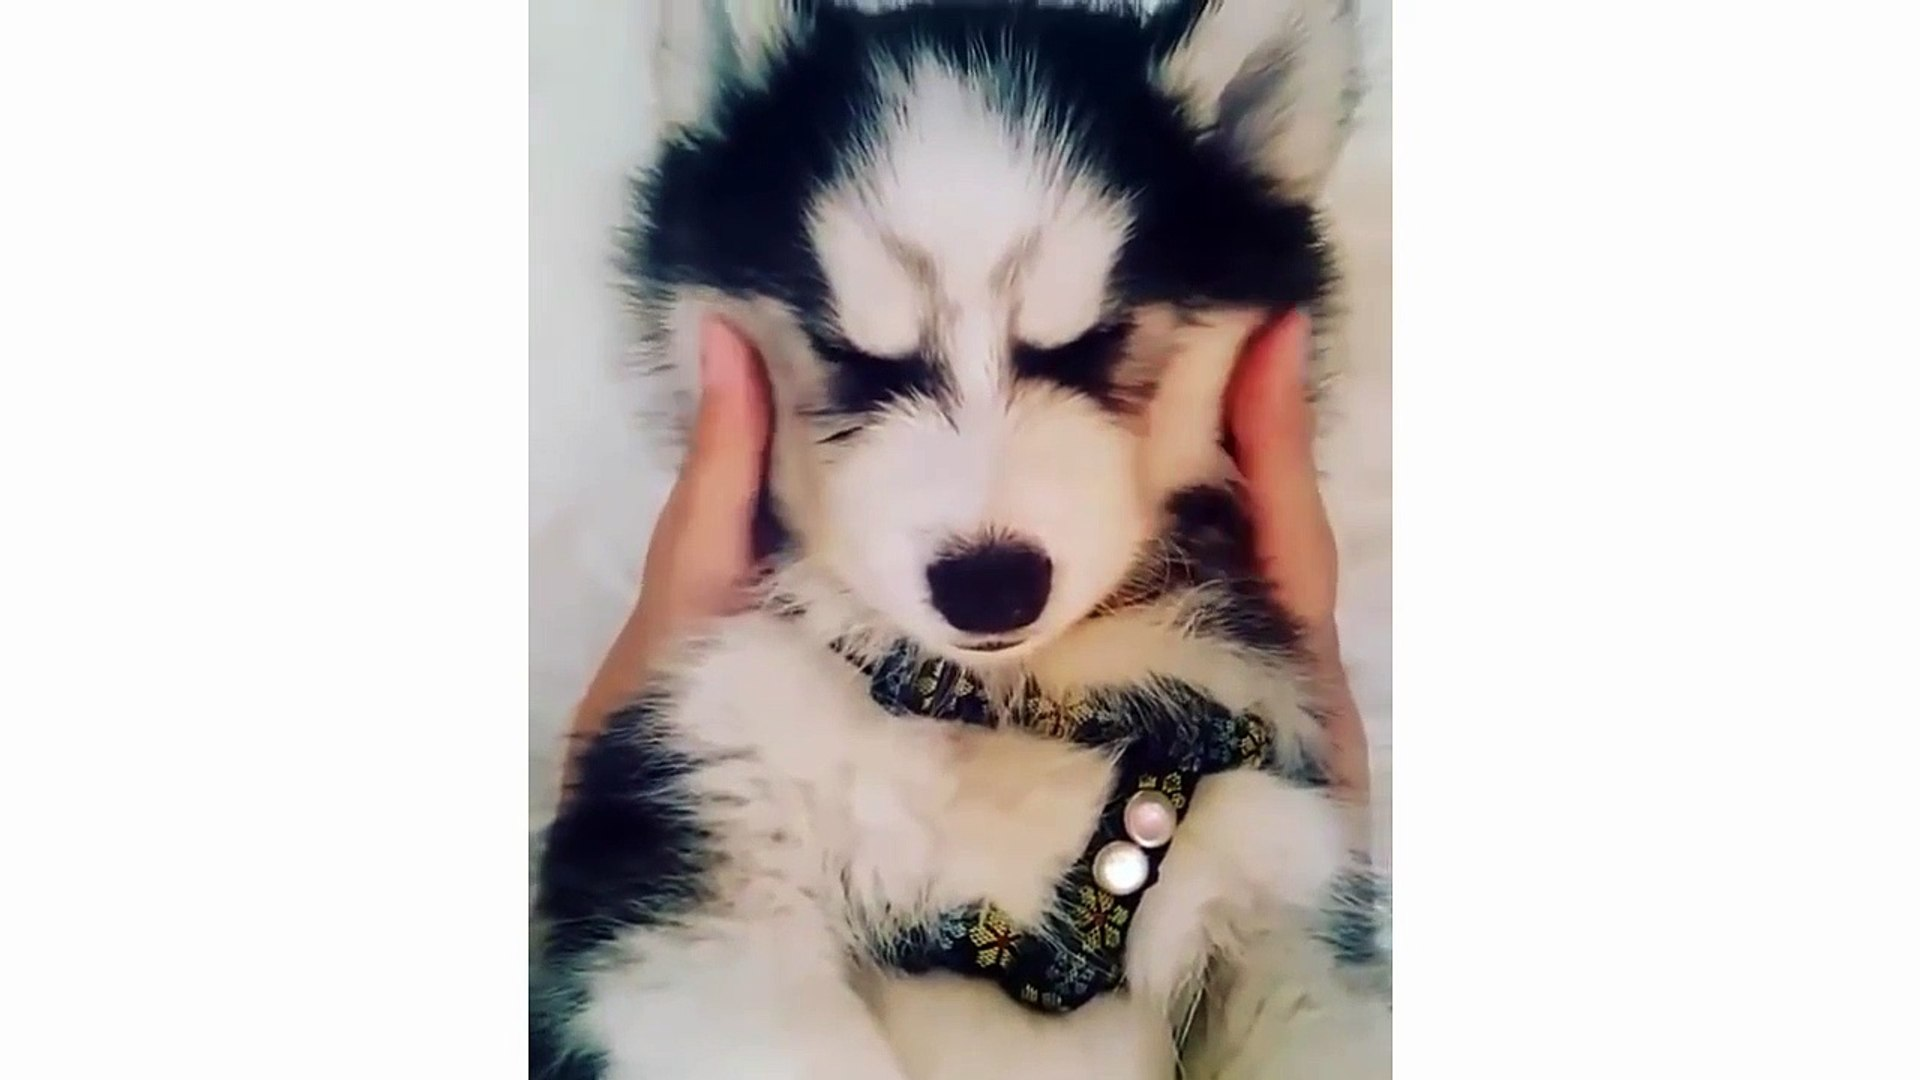 Funny And Cute Husky Puppies Compilation - Cute Husky Dog video